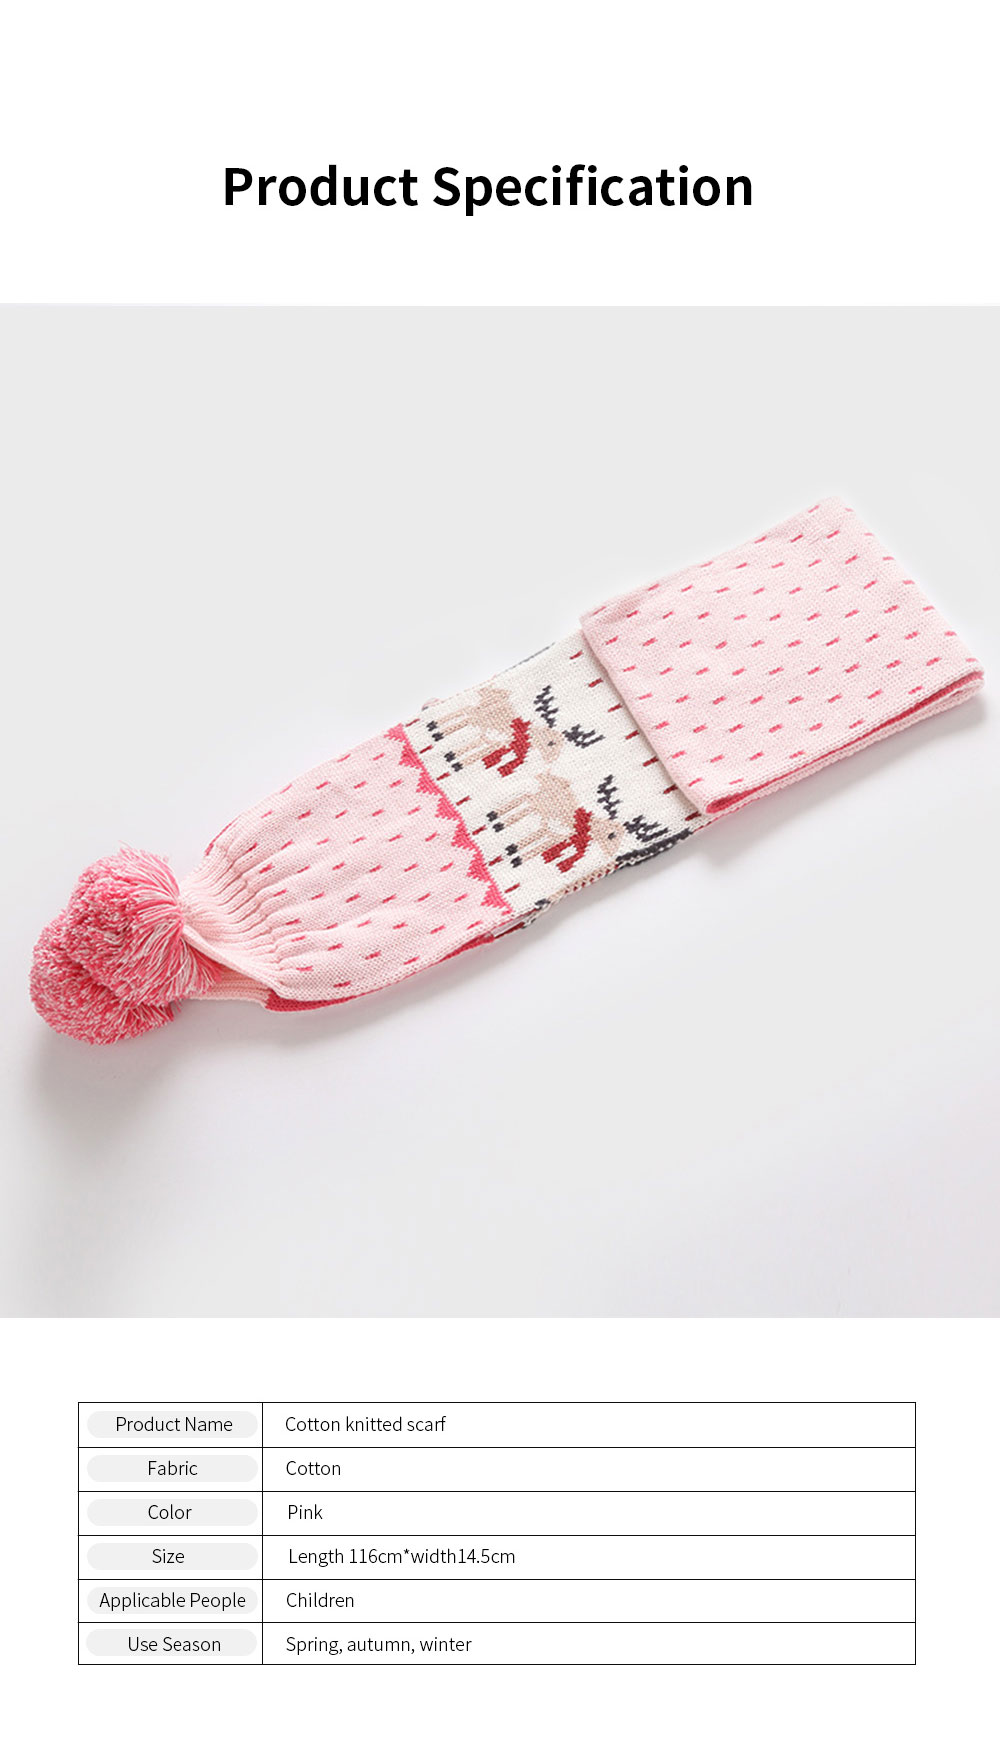 Ruhi New Style Long Scarf for Kids' Wear 100% Cotton Knitted Thermal Kid's Scarf Pink Cartoon Deer Pattern Scarf Winter Autumn 6